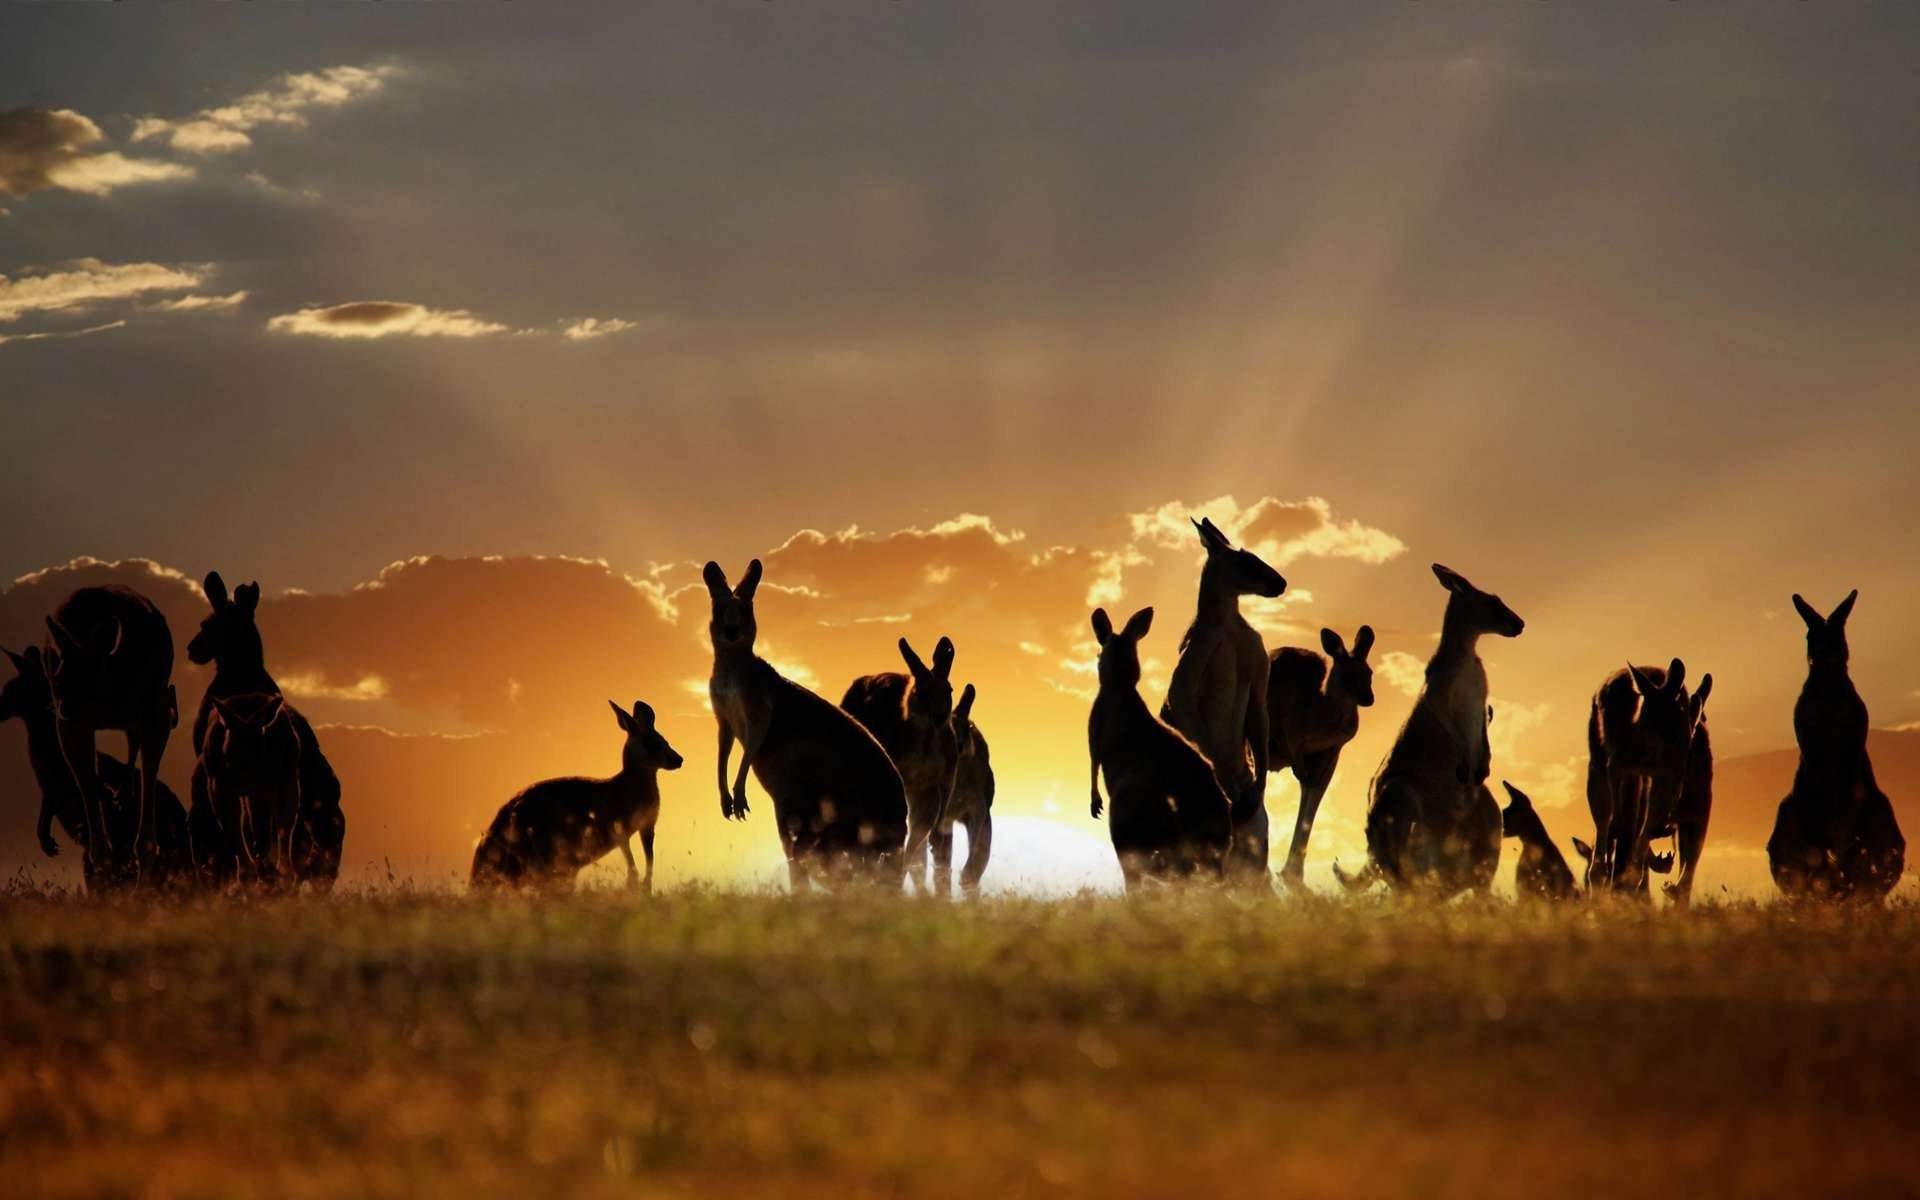 Kangaroo wallpapers images photos pictures backgrounds - All animals hd wallpapers ...